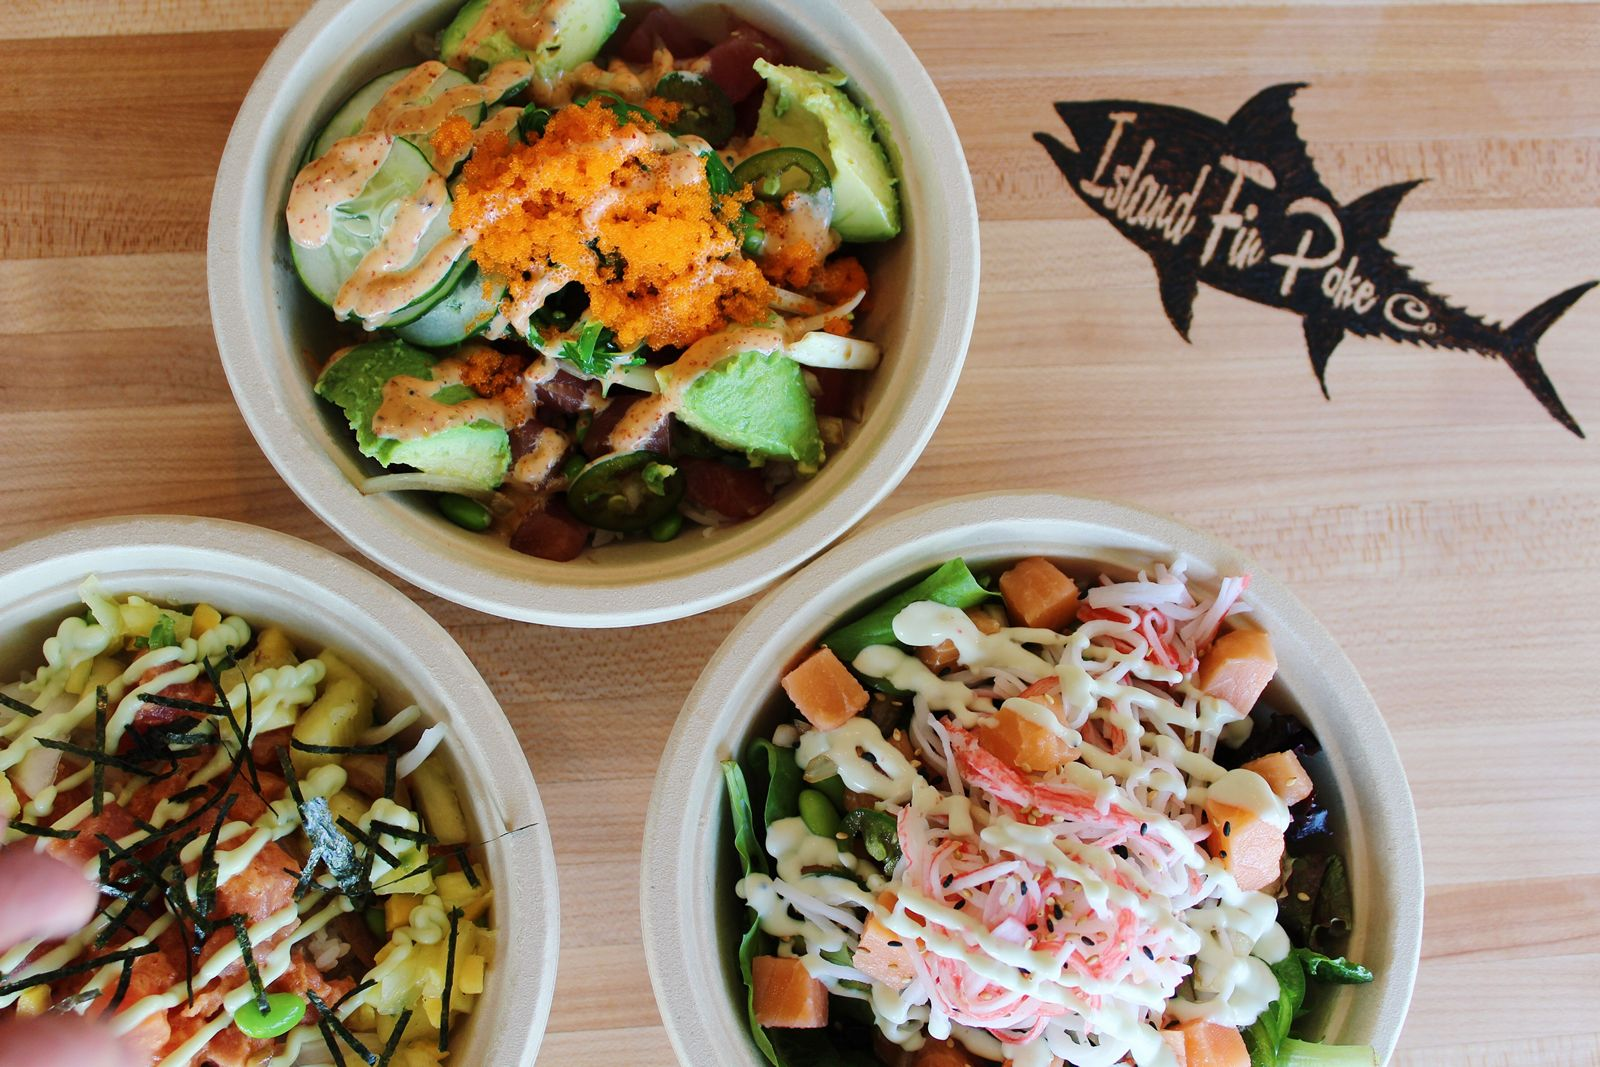 Island Fin Poké Co. Opens First NoVA Location in Falls Church